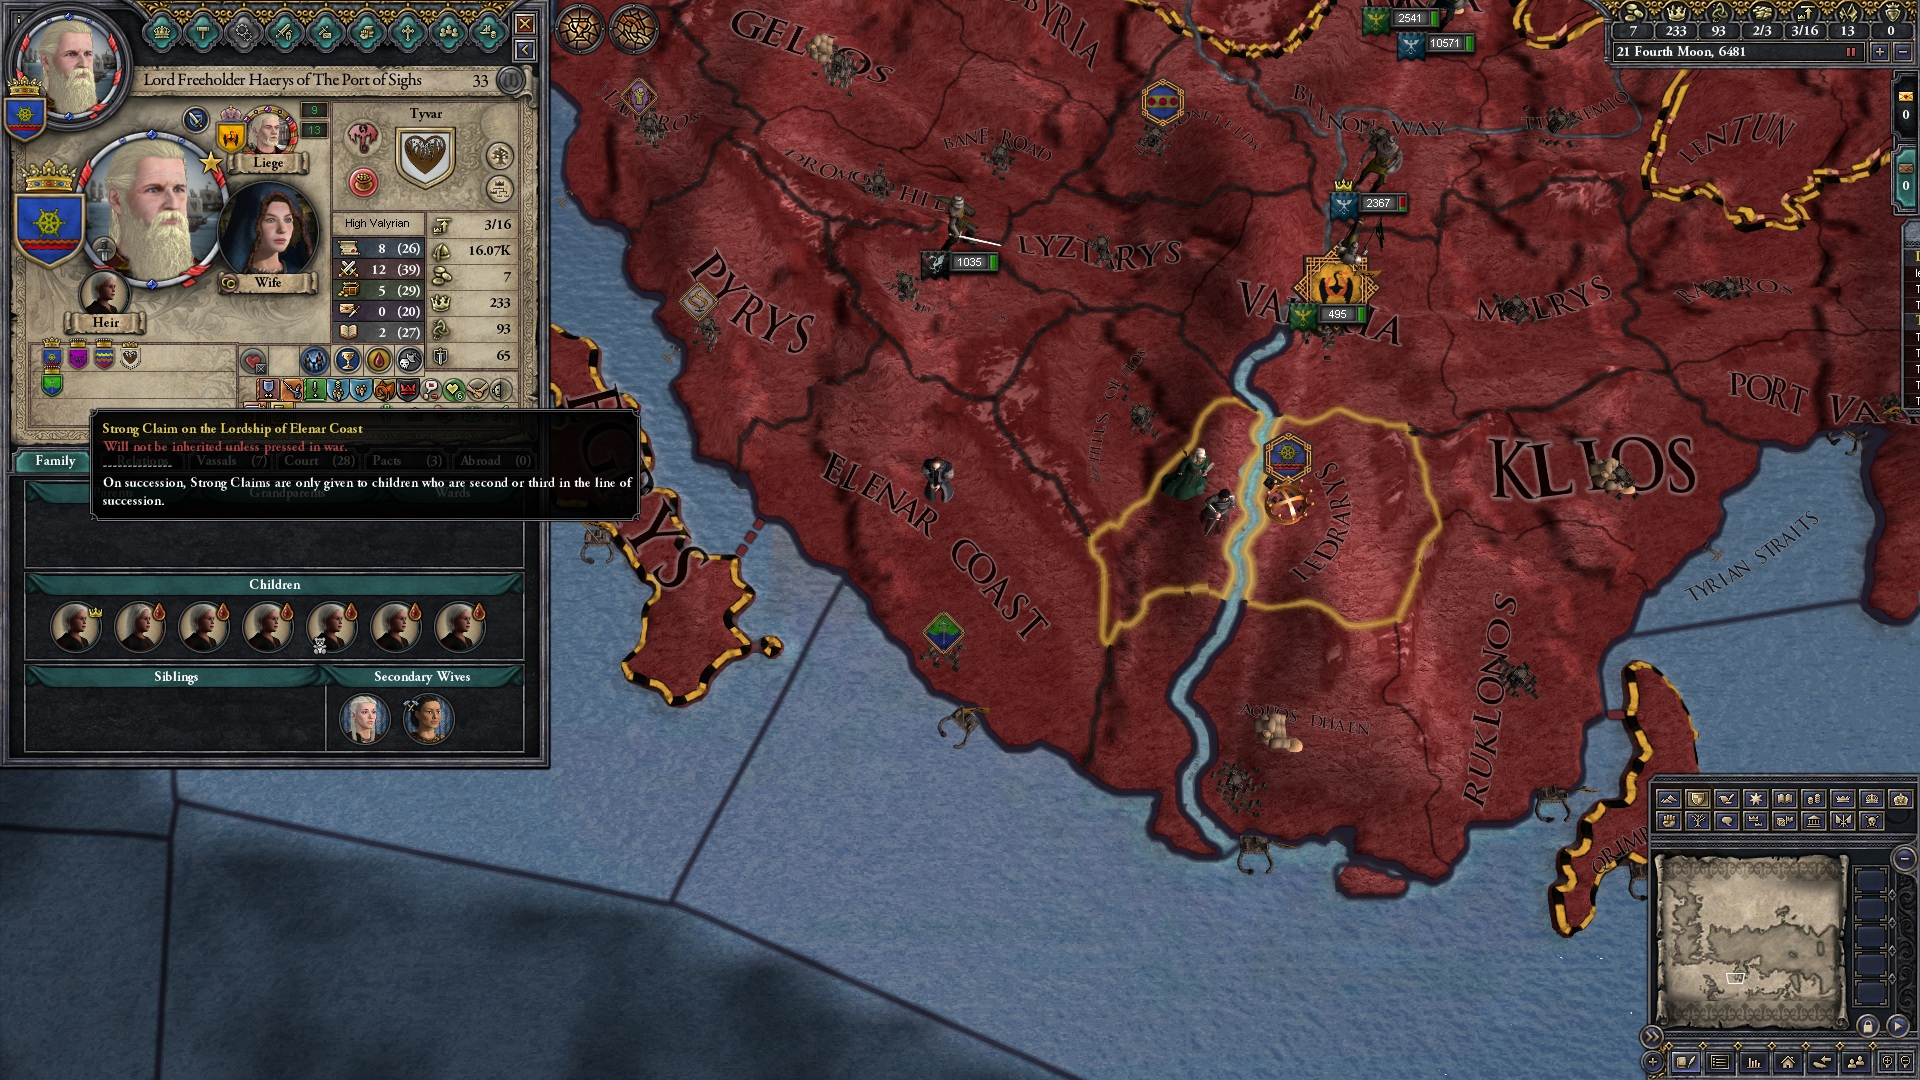 Claim not working | The Citadel: A Game of Thrones Mod